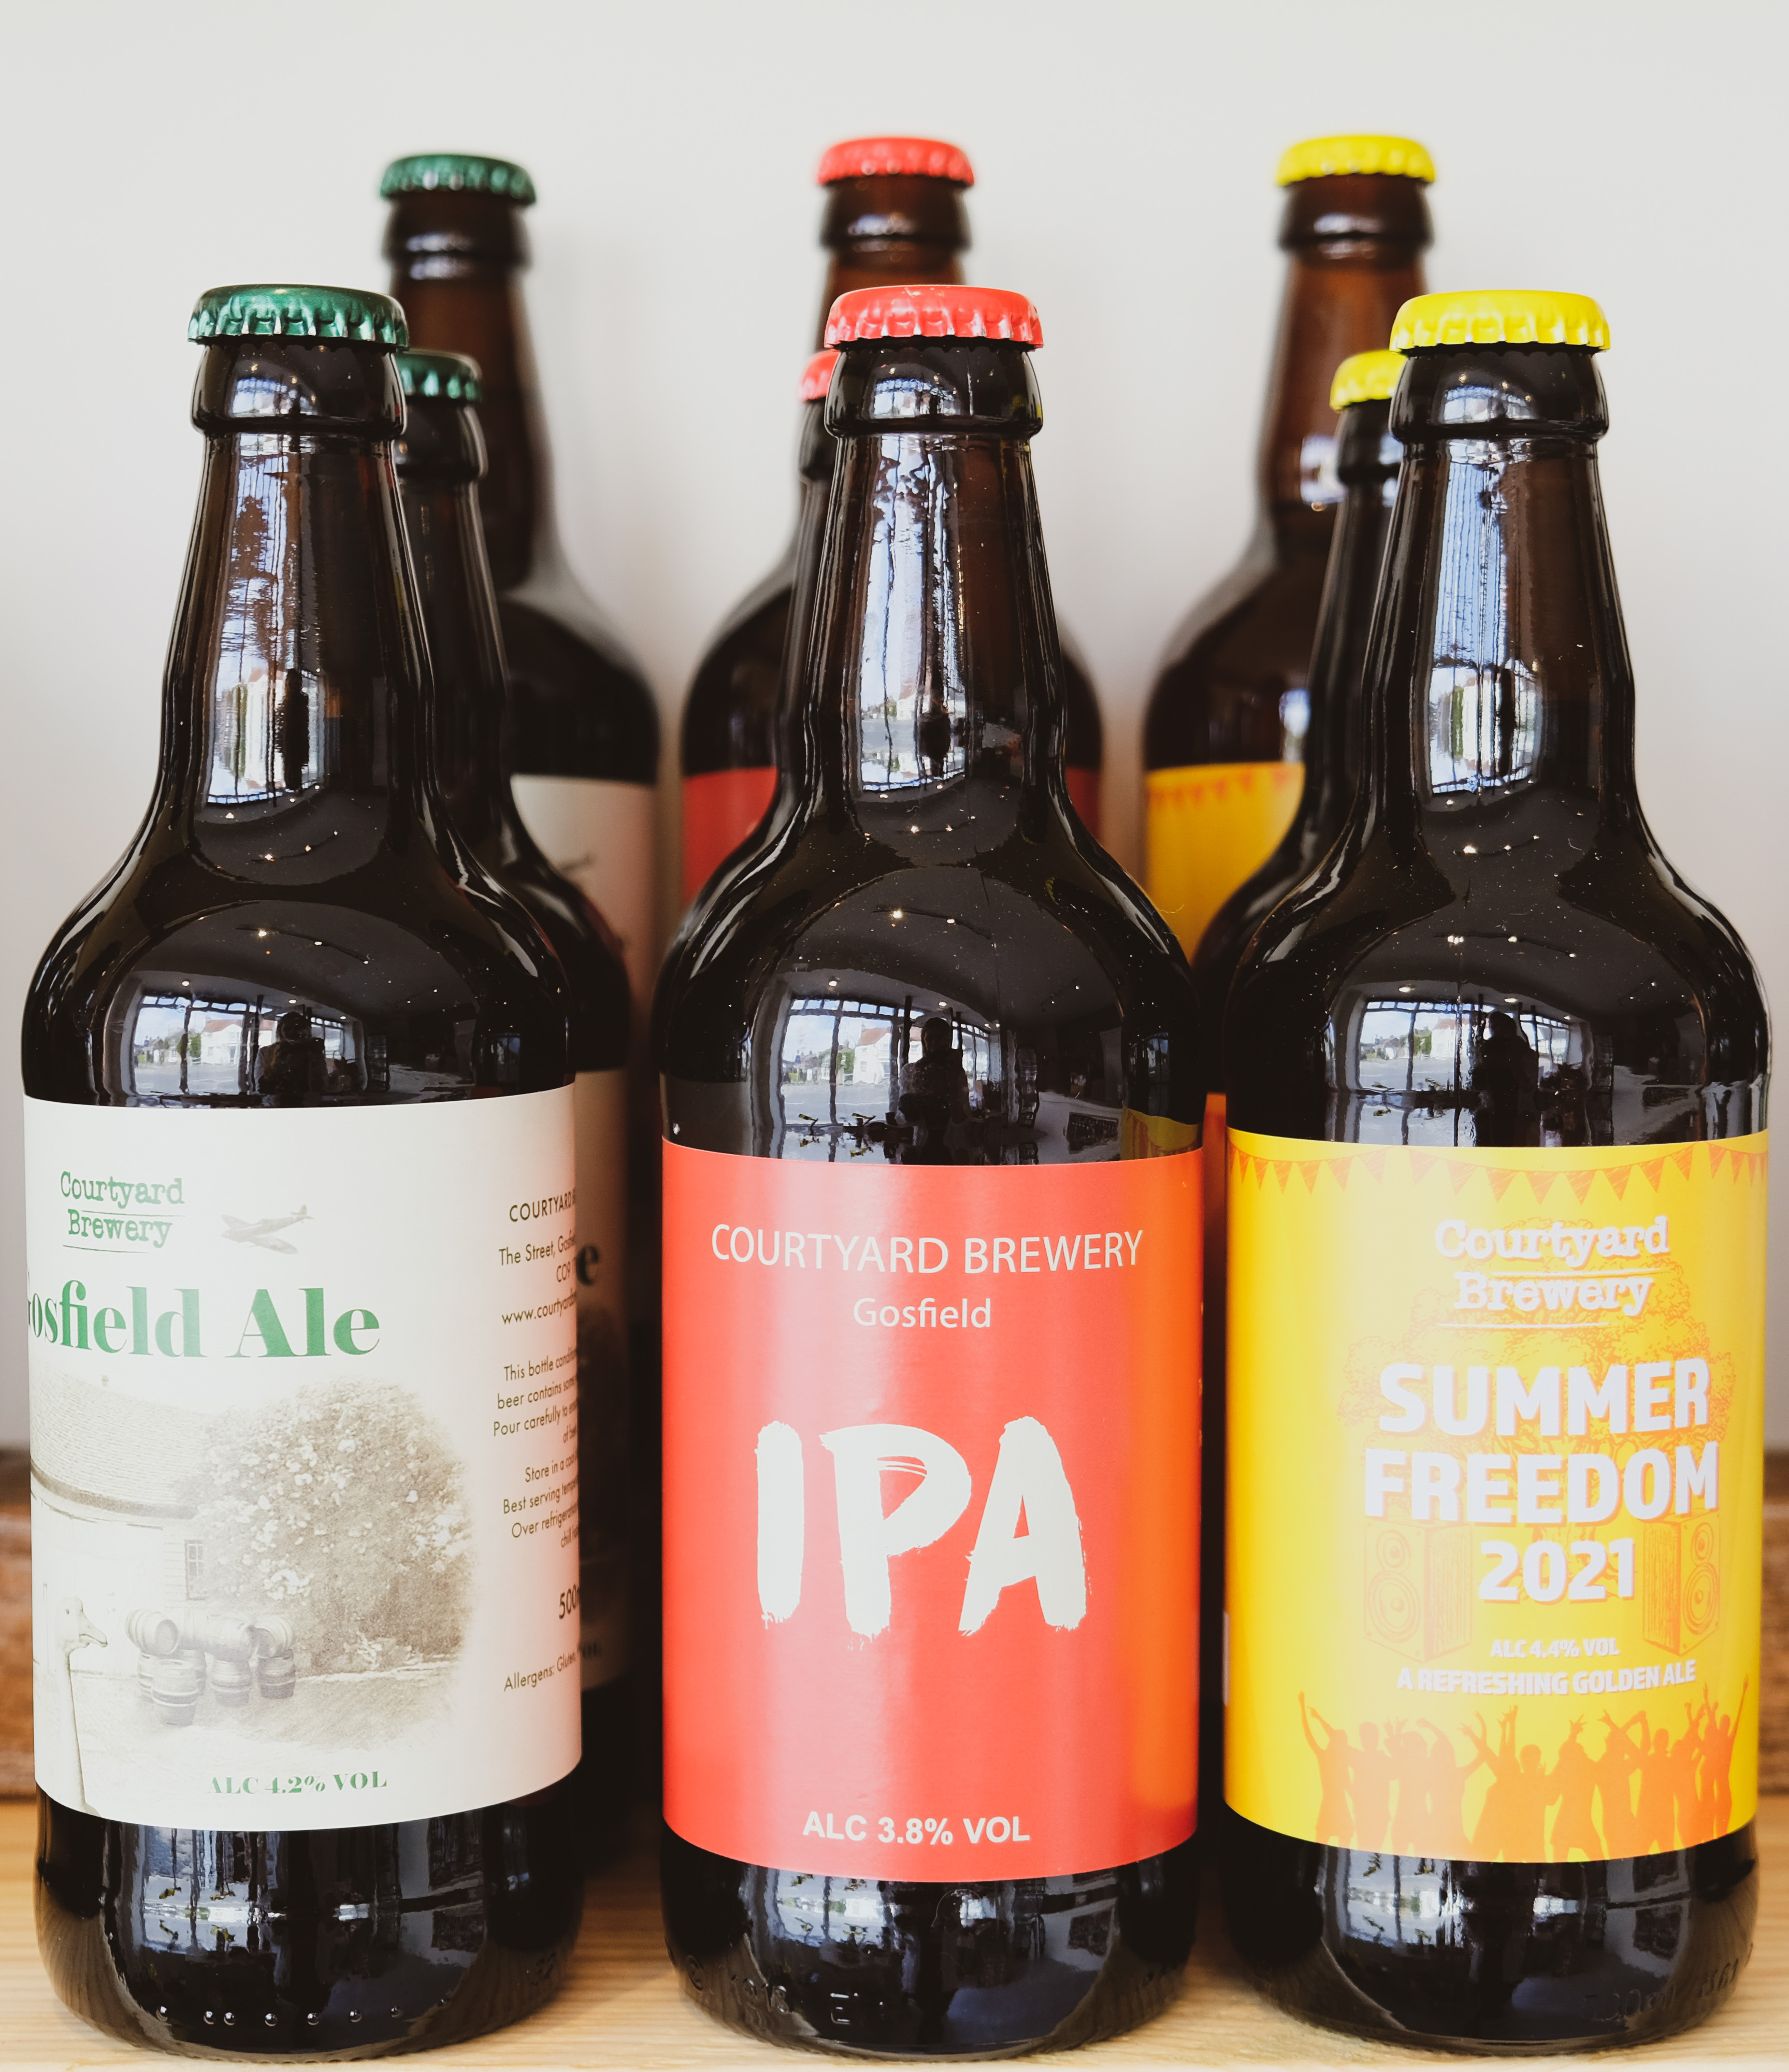 Courtyard Brewery beer range available at the Essex Produce Co. in Kelvedon, Essex.